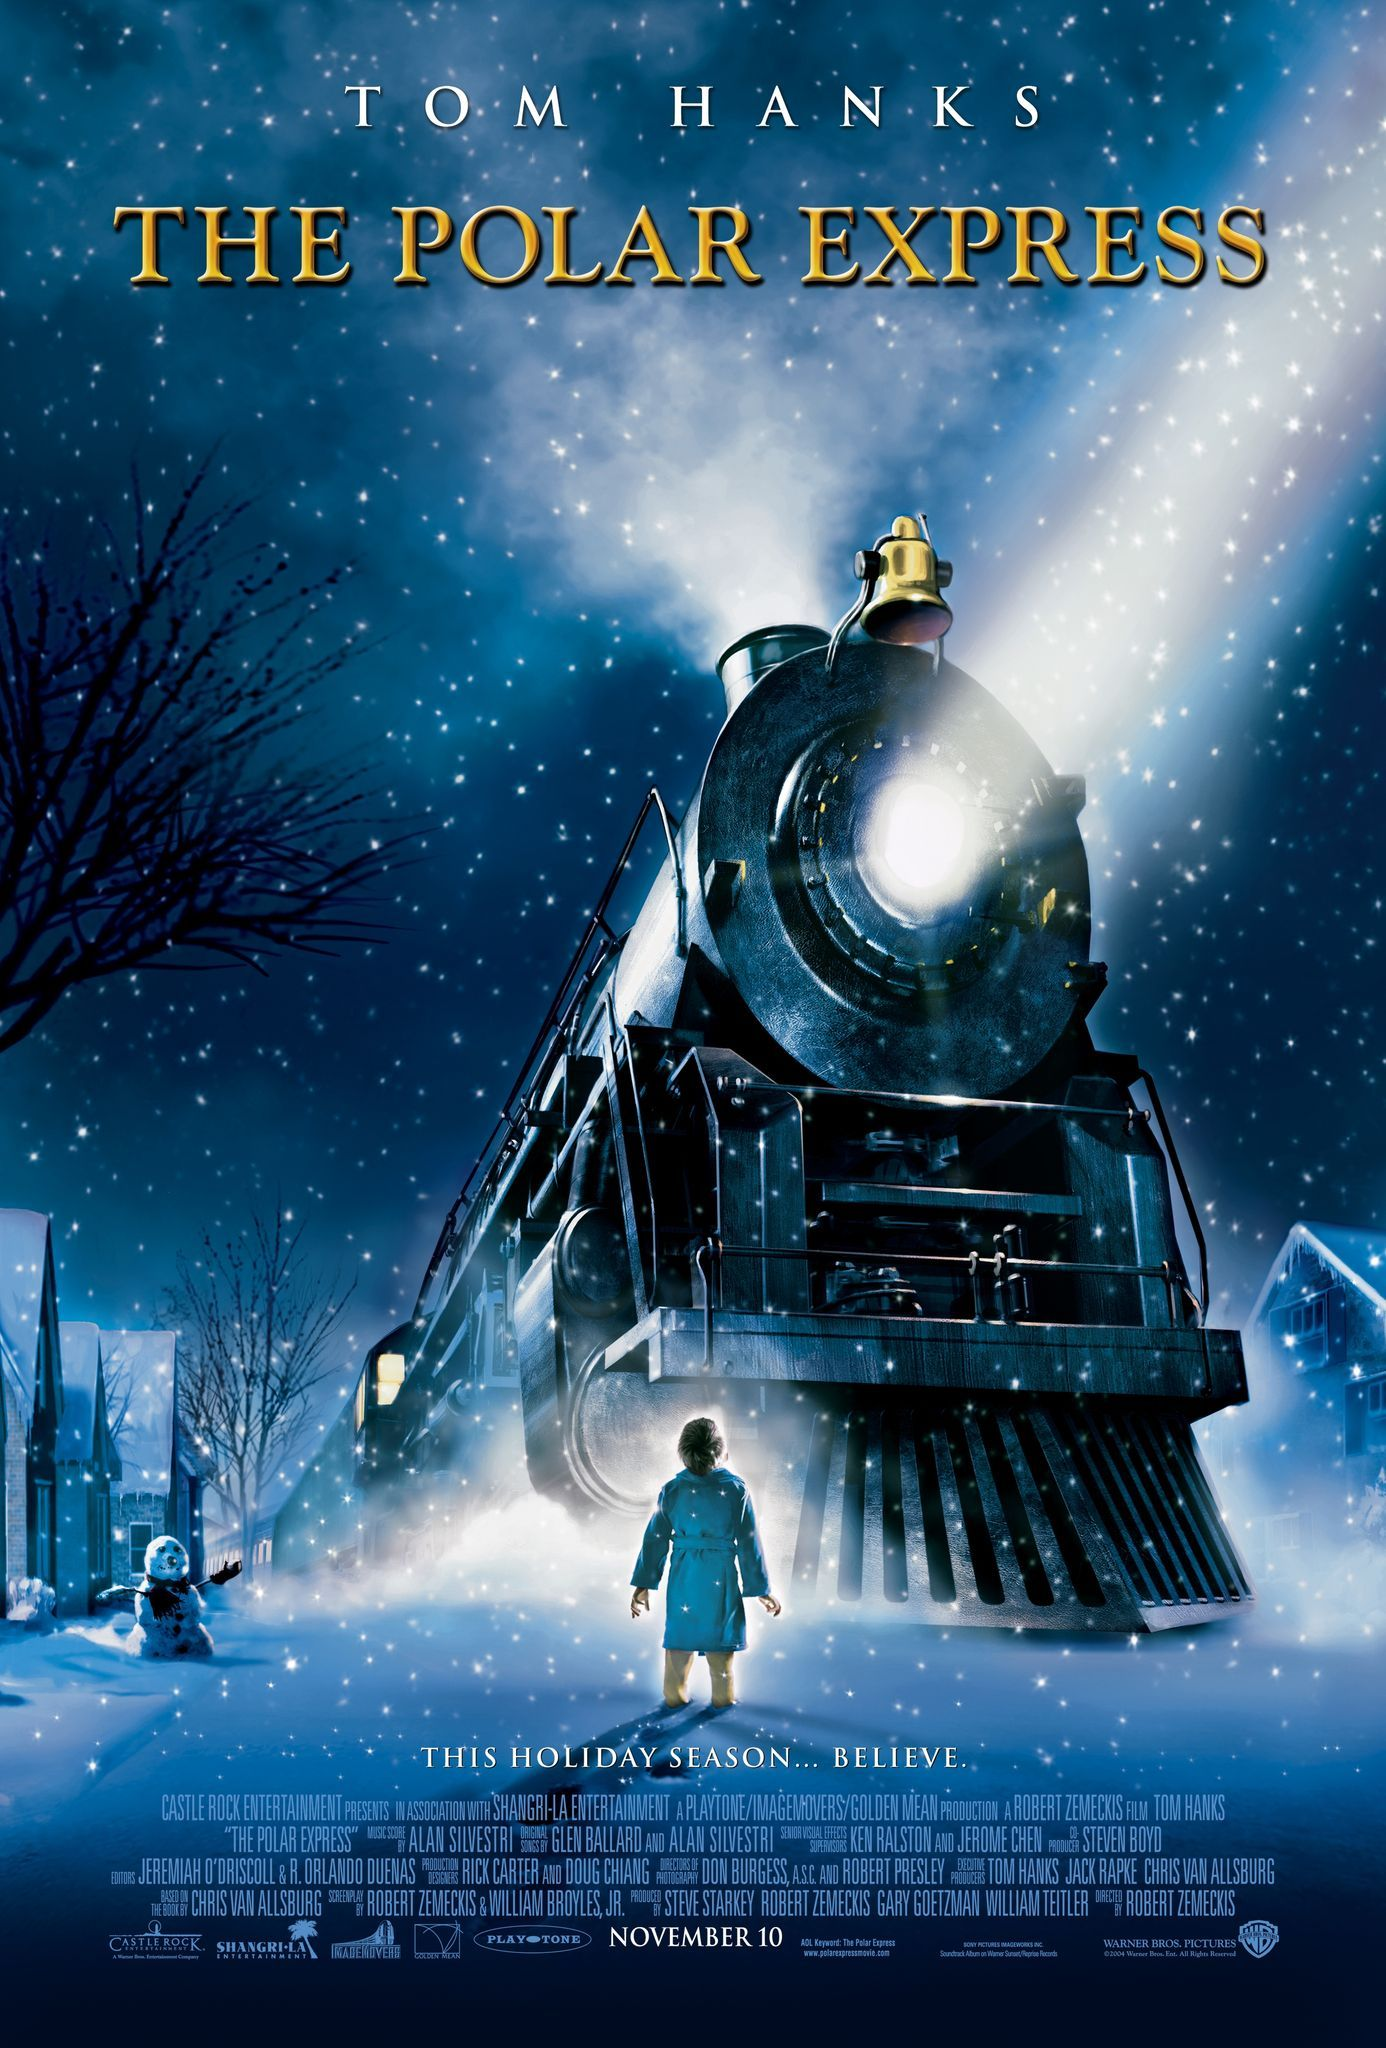 65 Best Holiday Movies of All Time